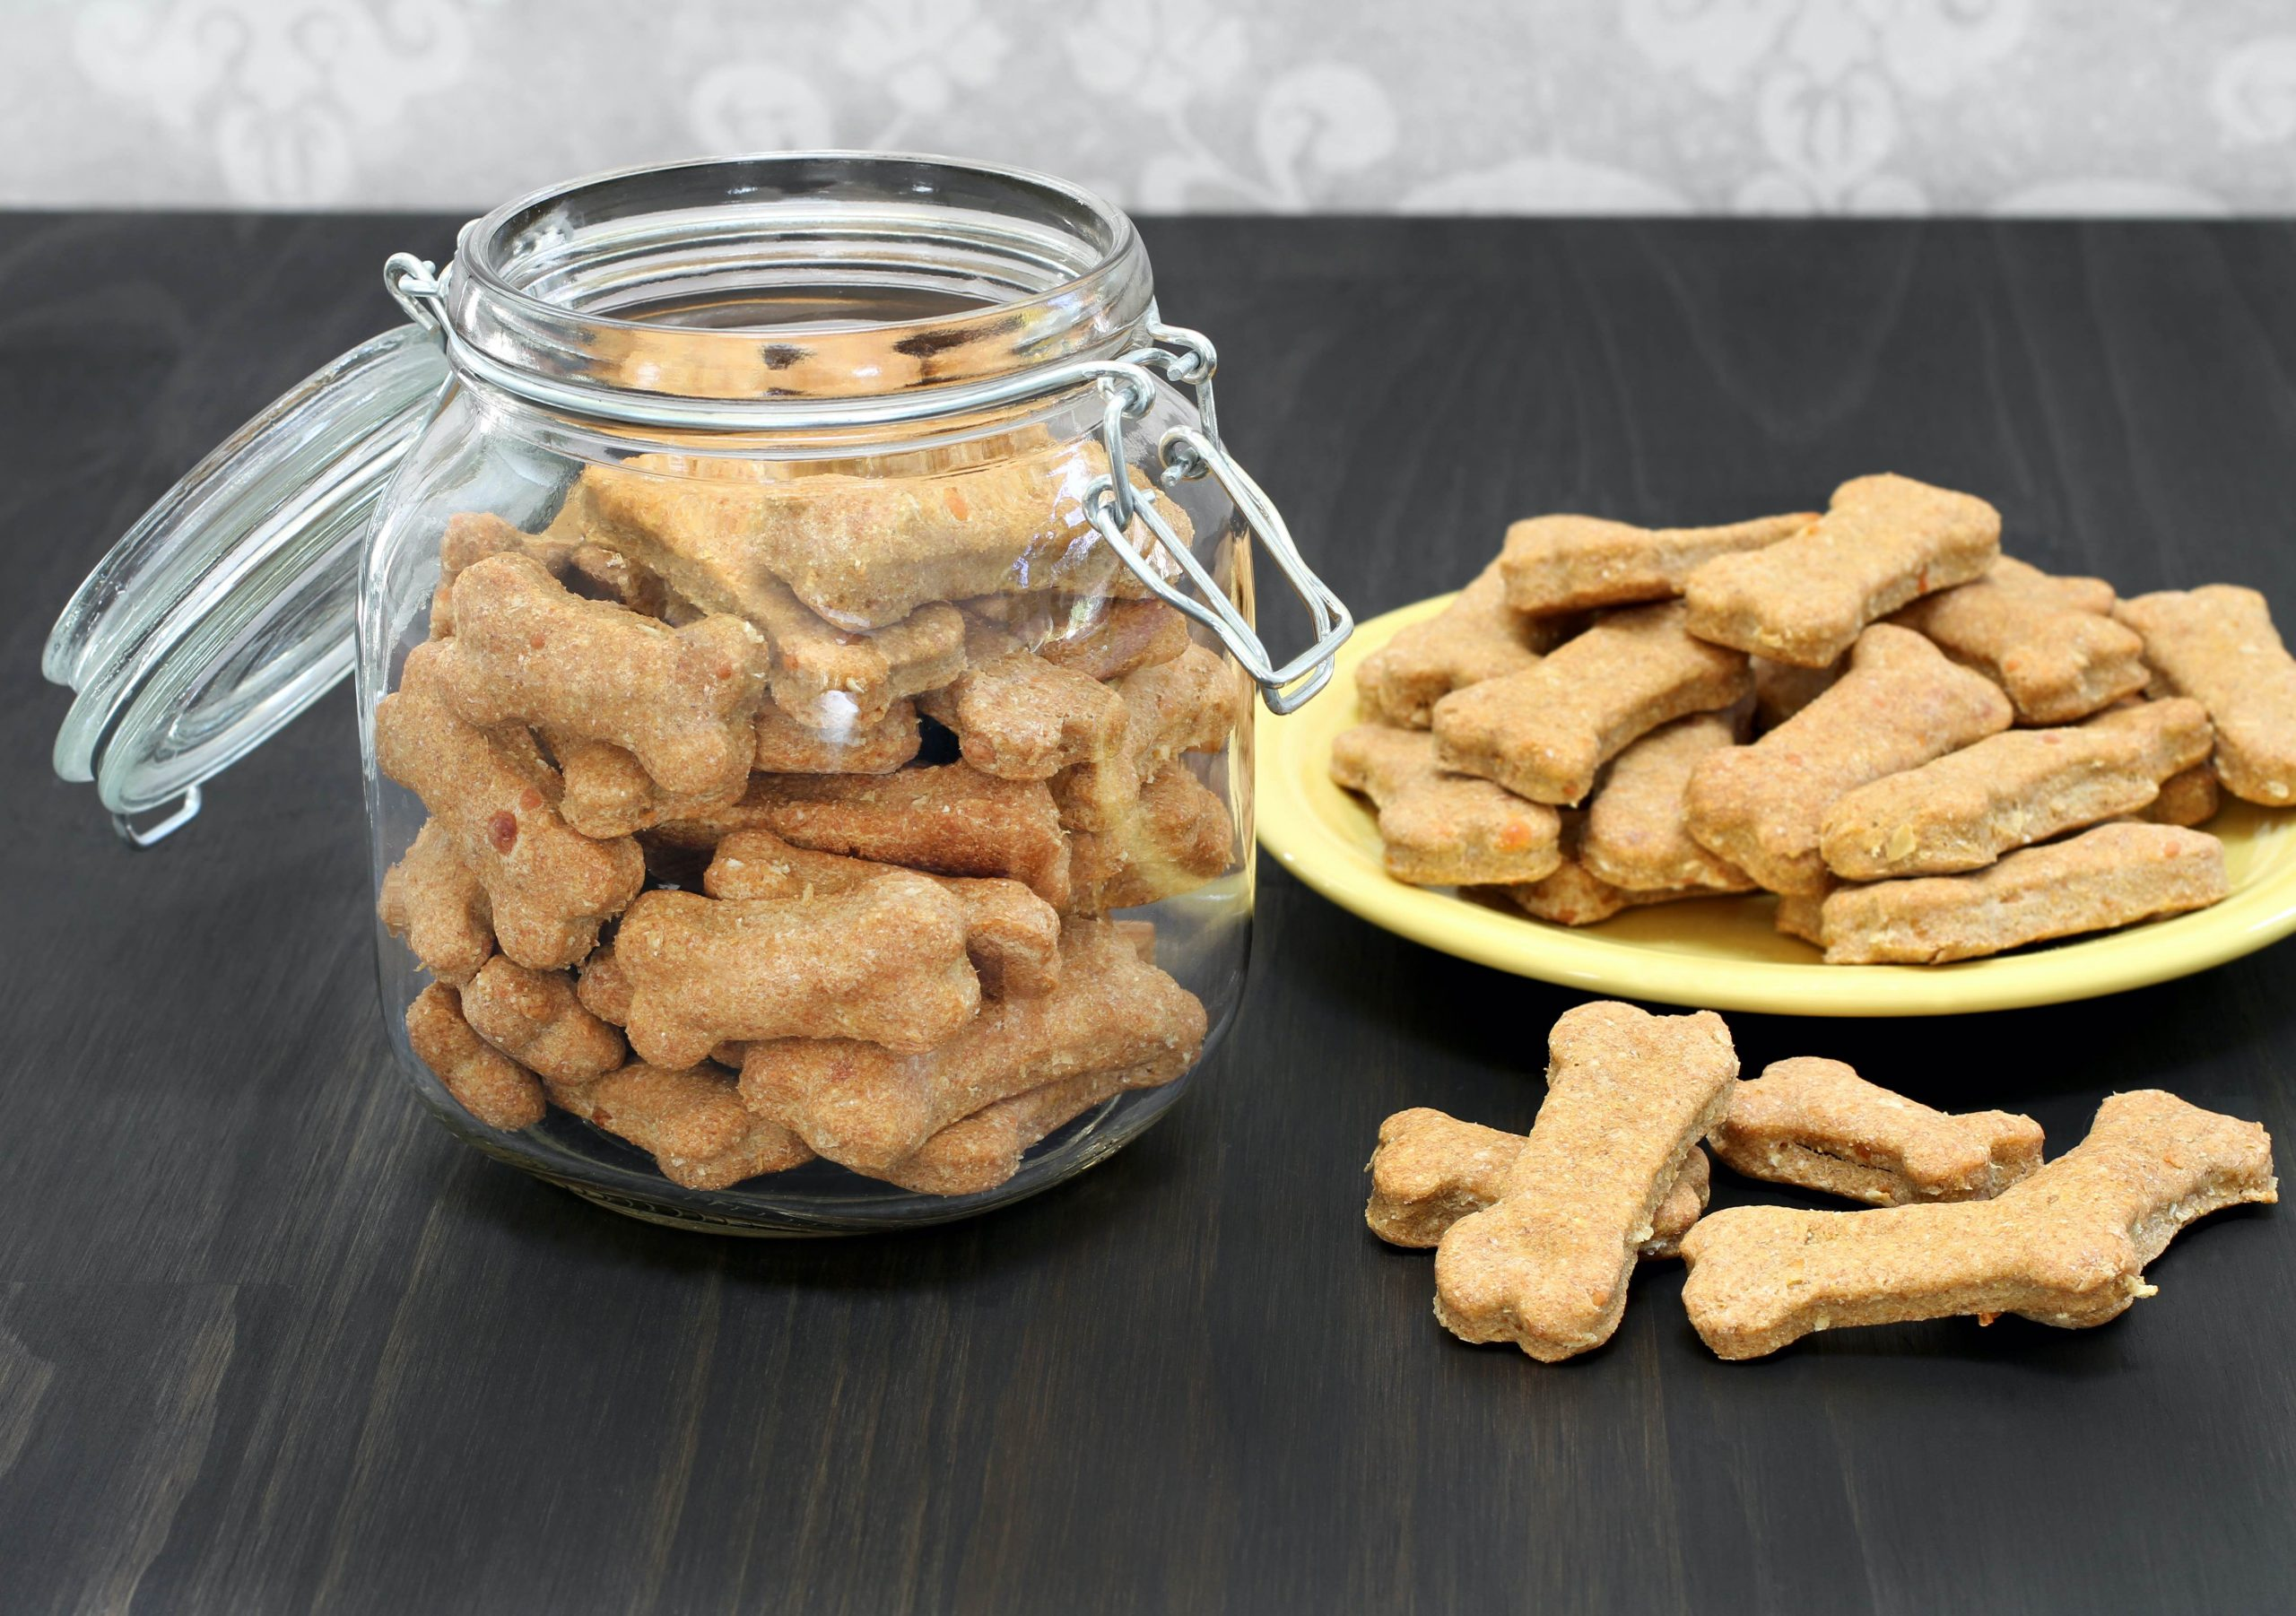 Homemade Peanut Butter Cookies for Dogs